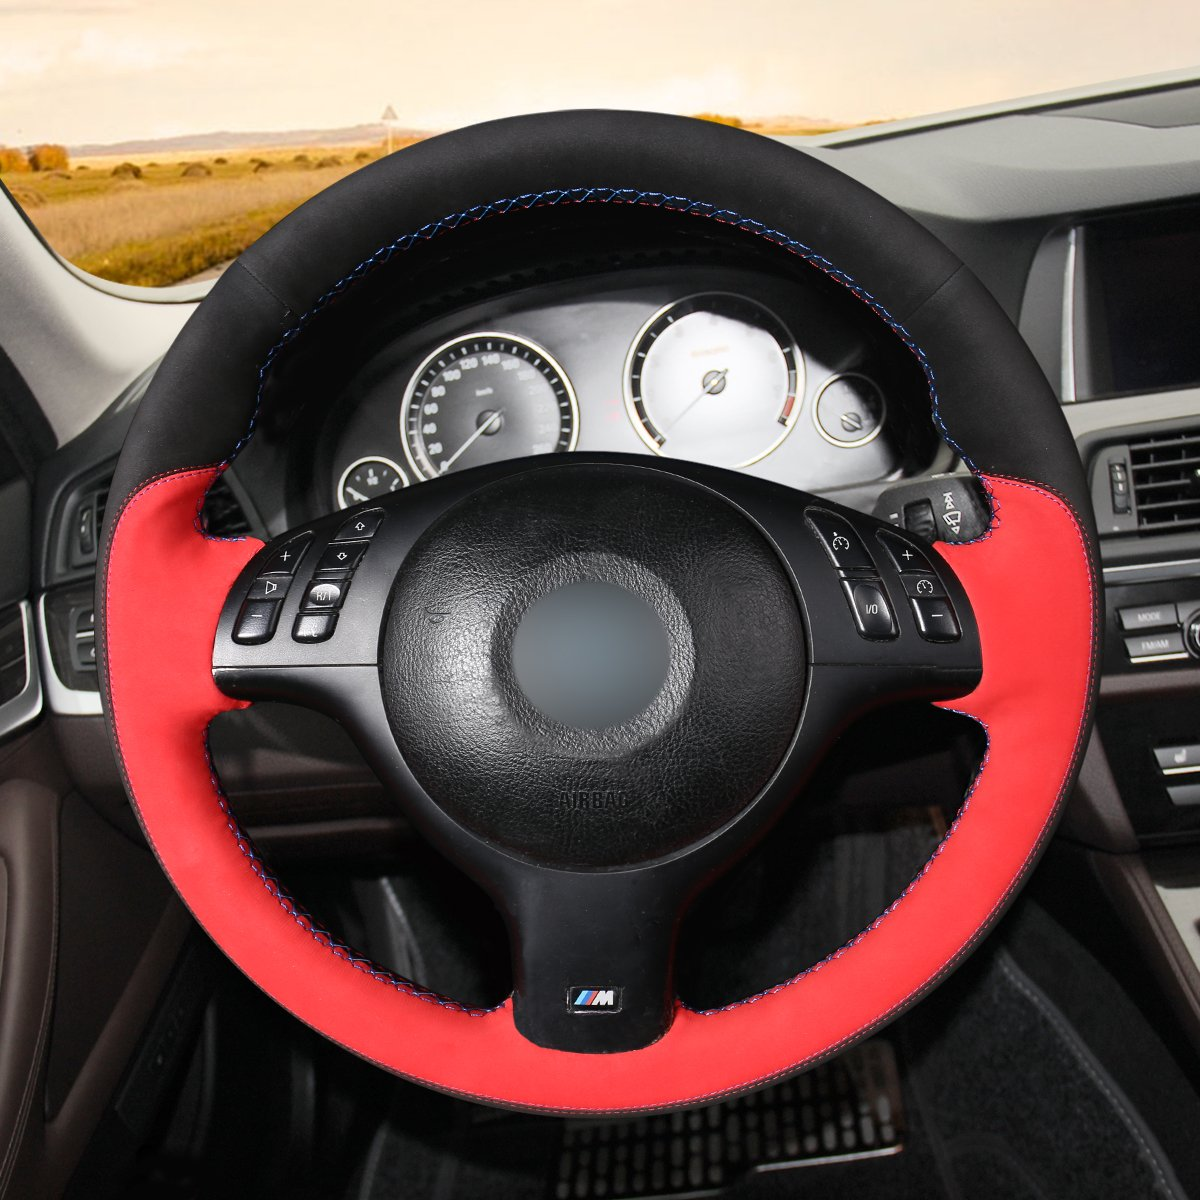 MEWANT Customized Hand Stitched Suede with Leather Steering Wheel Cover Wrap for BMW E46 E39 330i 540i 525i 530i 330Ci M3 2001 2002 2003 Accessories Skins Protector Auto Interior Light Blue Marker